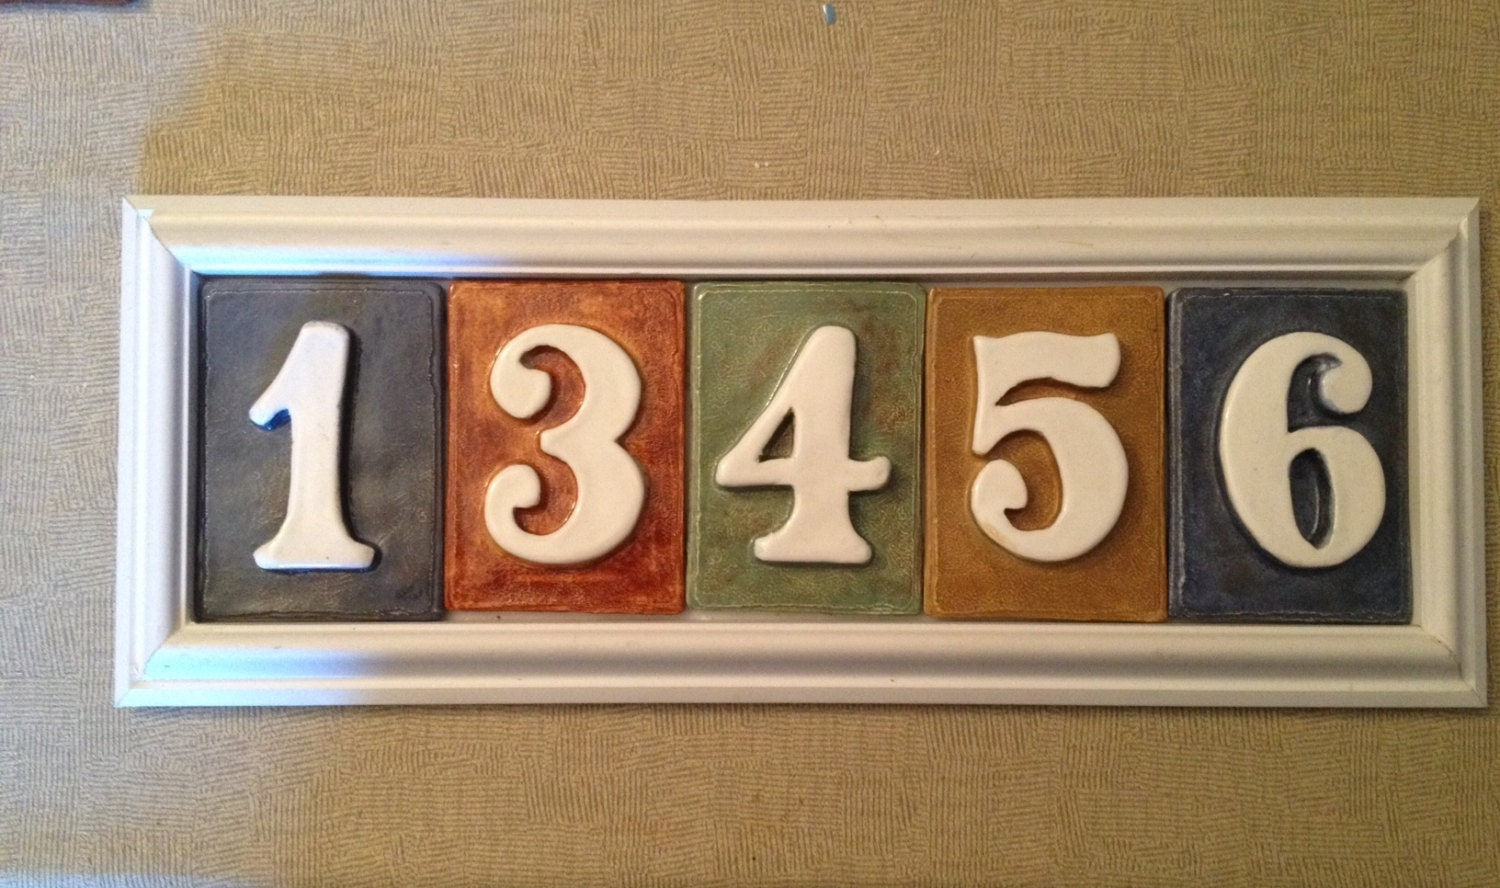 house number tile plaque 5 number style pvc by applewoodpottery. Black Bedroom Furniture Sets. Home Design Ideas